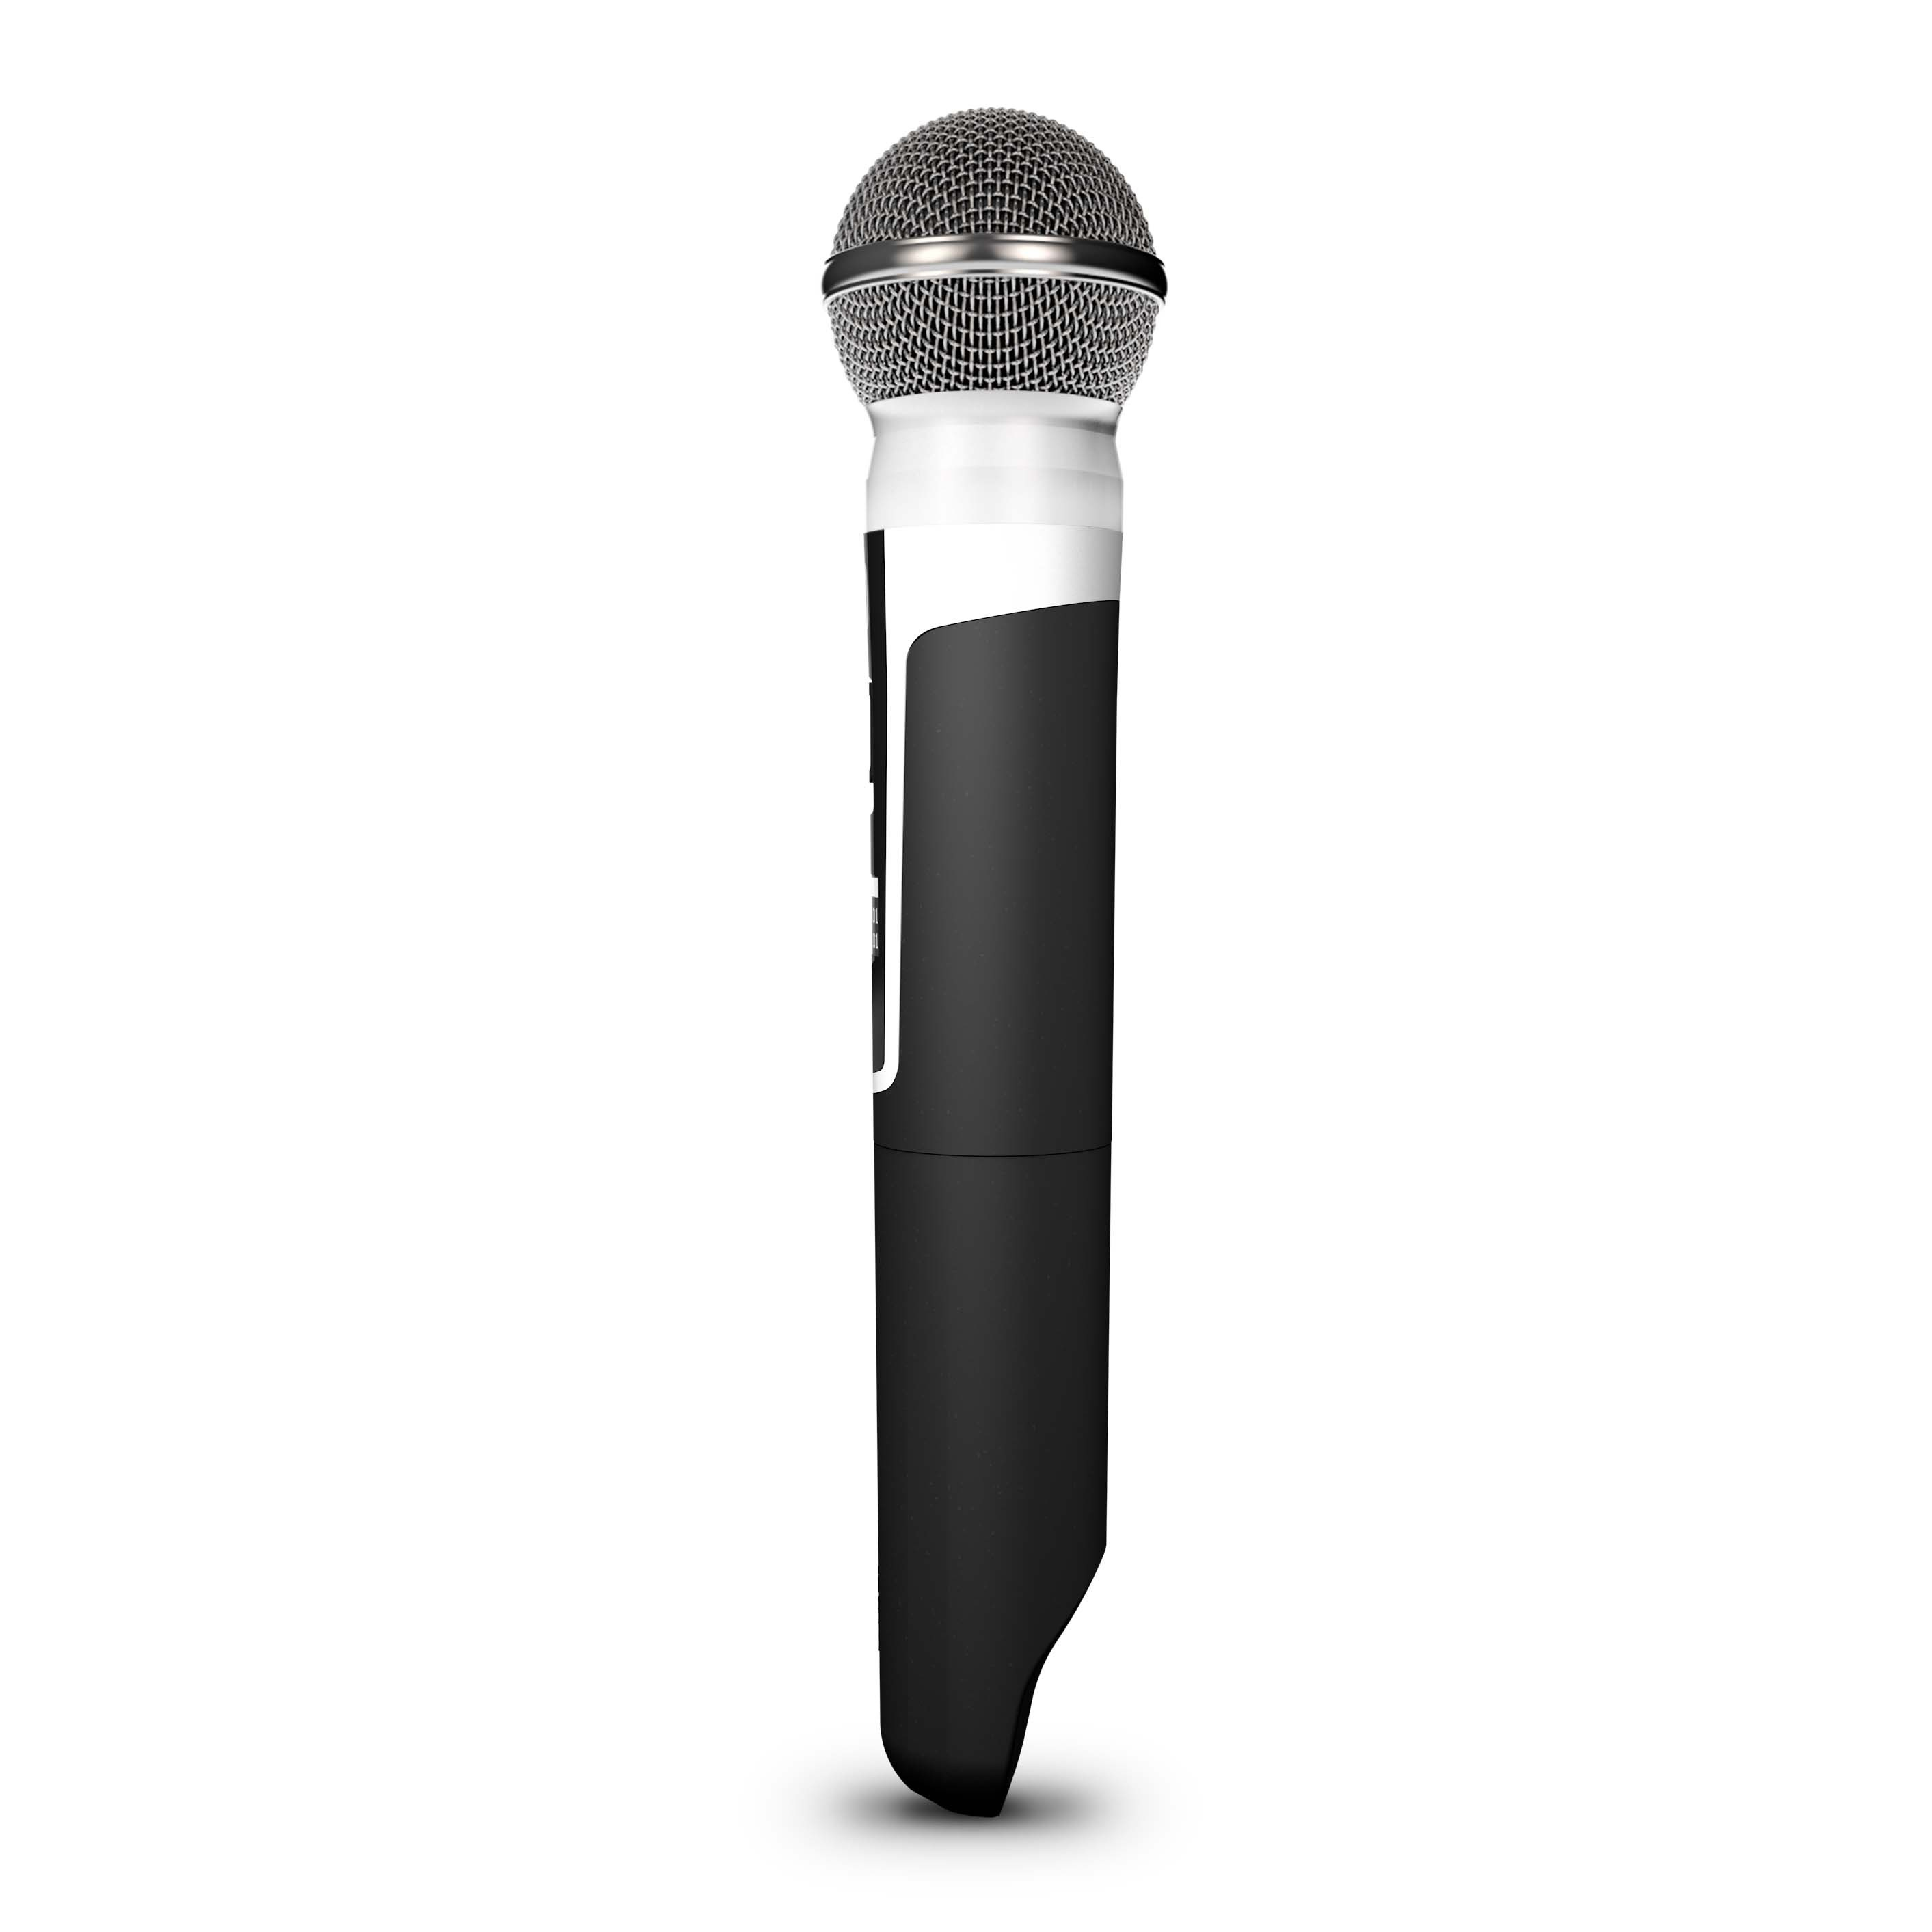 U506 HHD 2 Wireless Microphone System with 2 x Dynamic Handheld Microphone